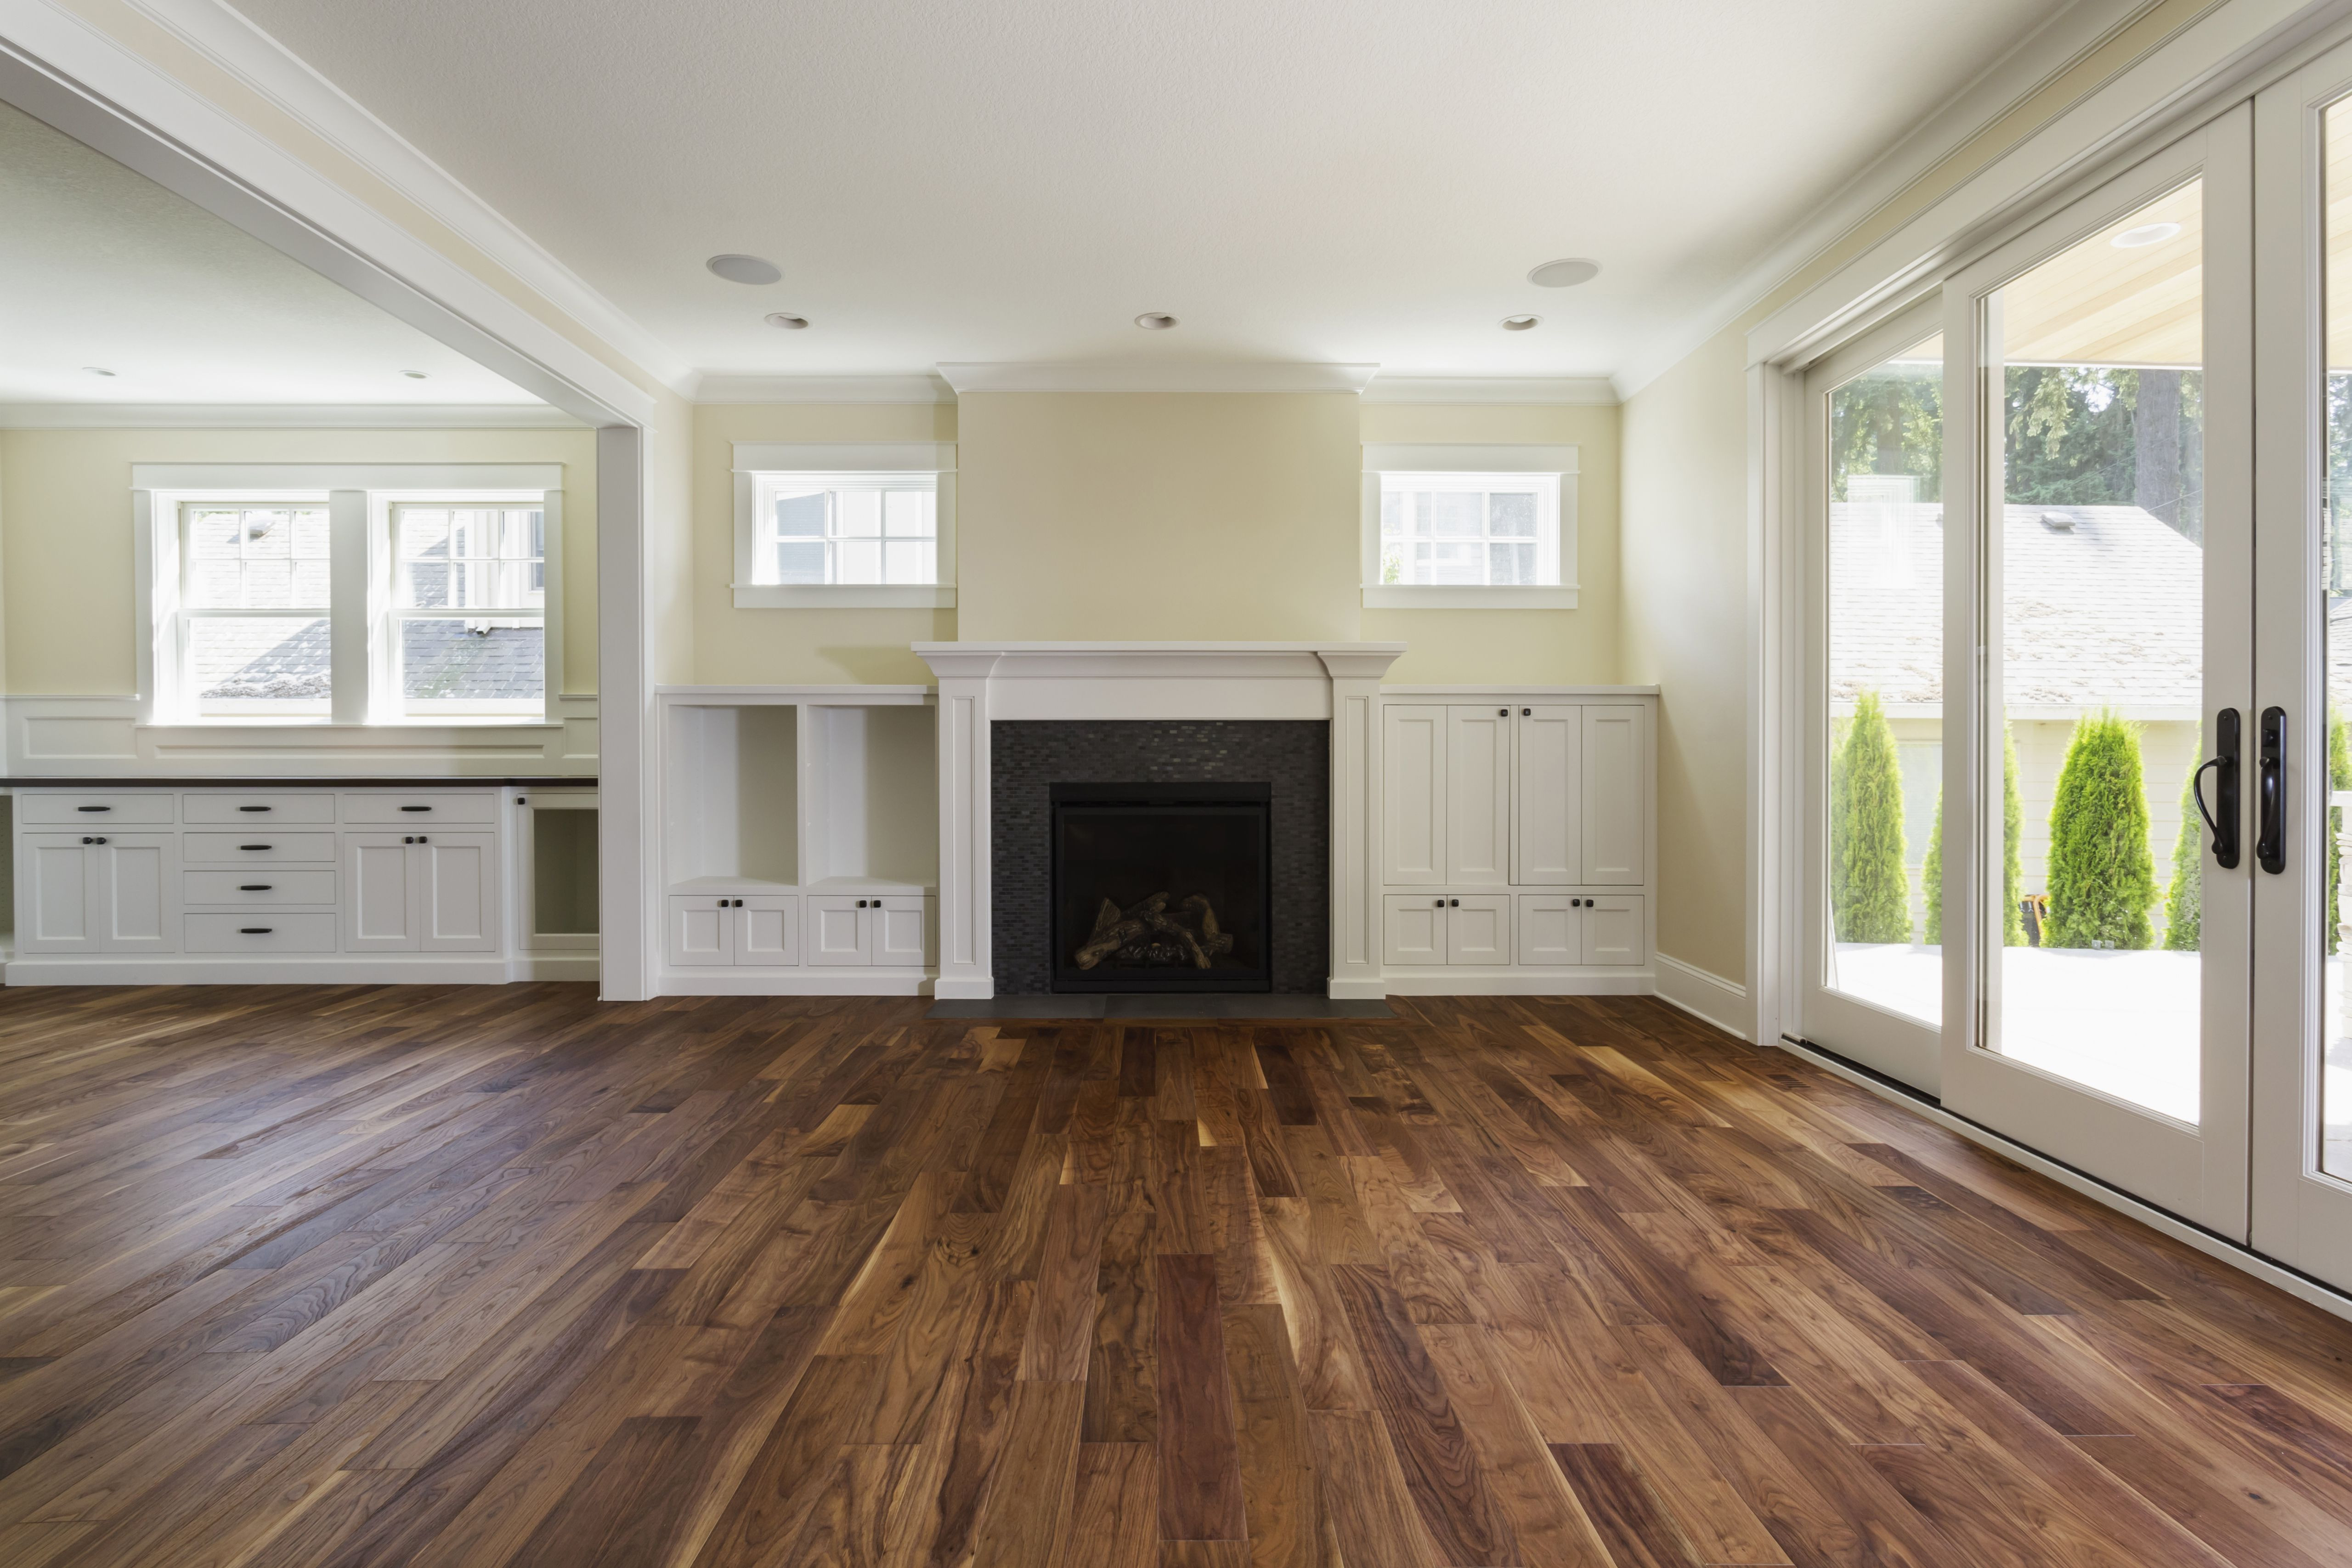 bruce wide plank hardwood flooring of the pros and cons of prefinished hardwood flooring pertaining to fireplace and built in shelves in living room 482143011 57bef8e33df78cc16e035397